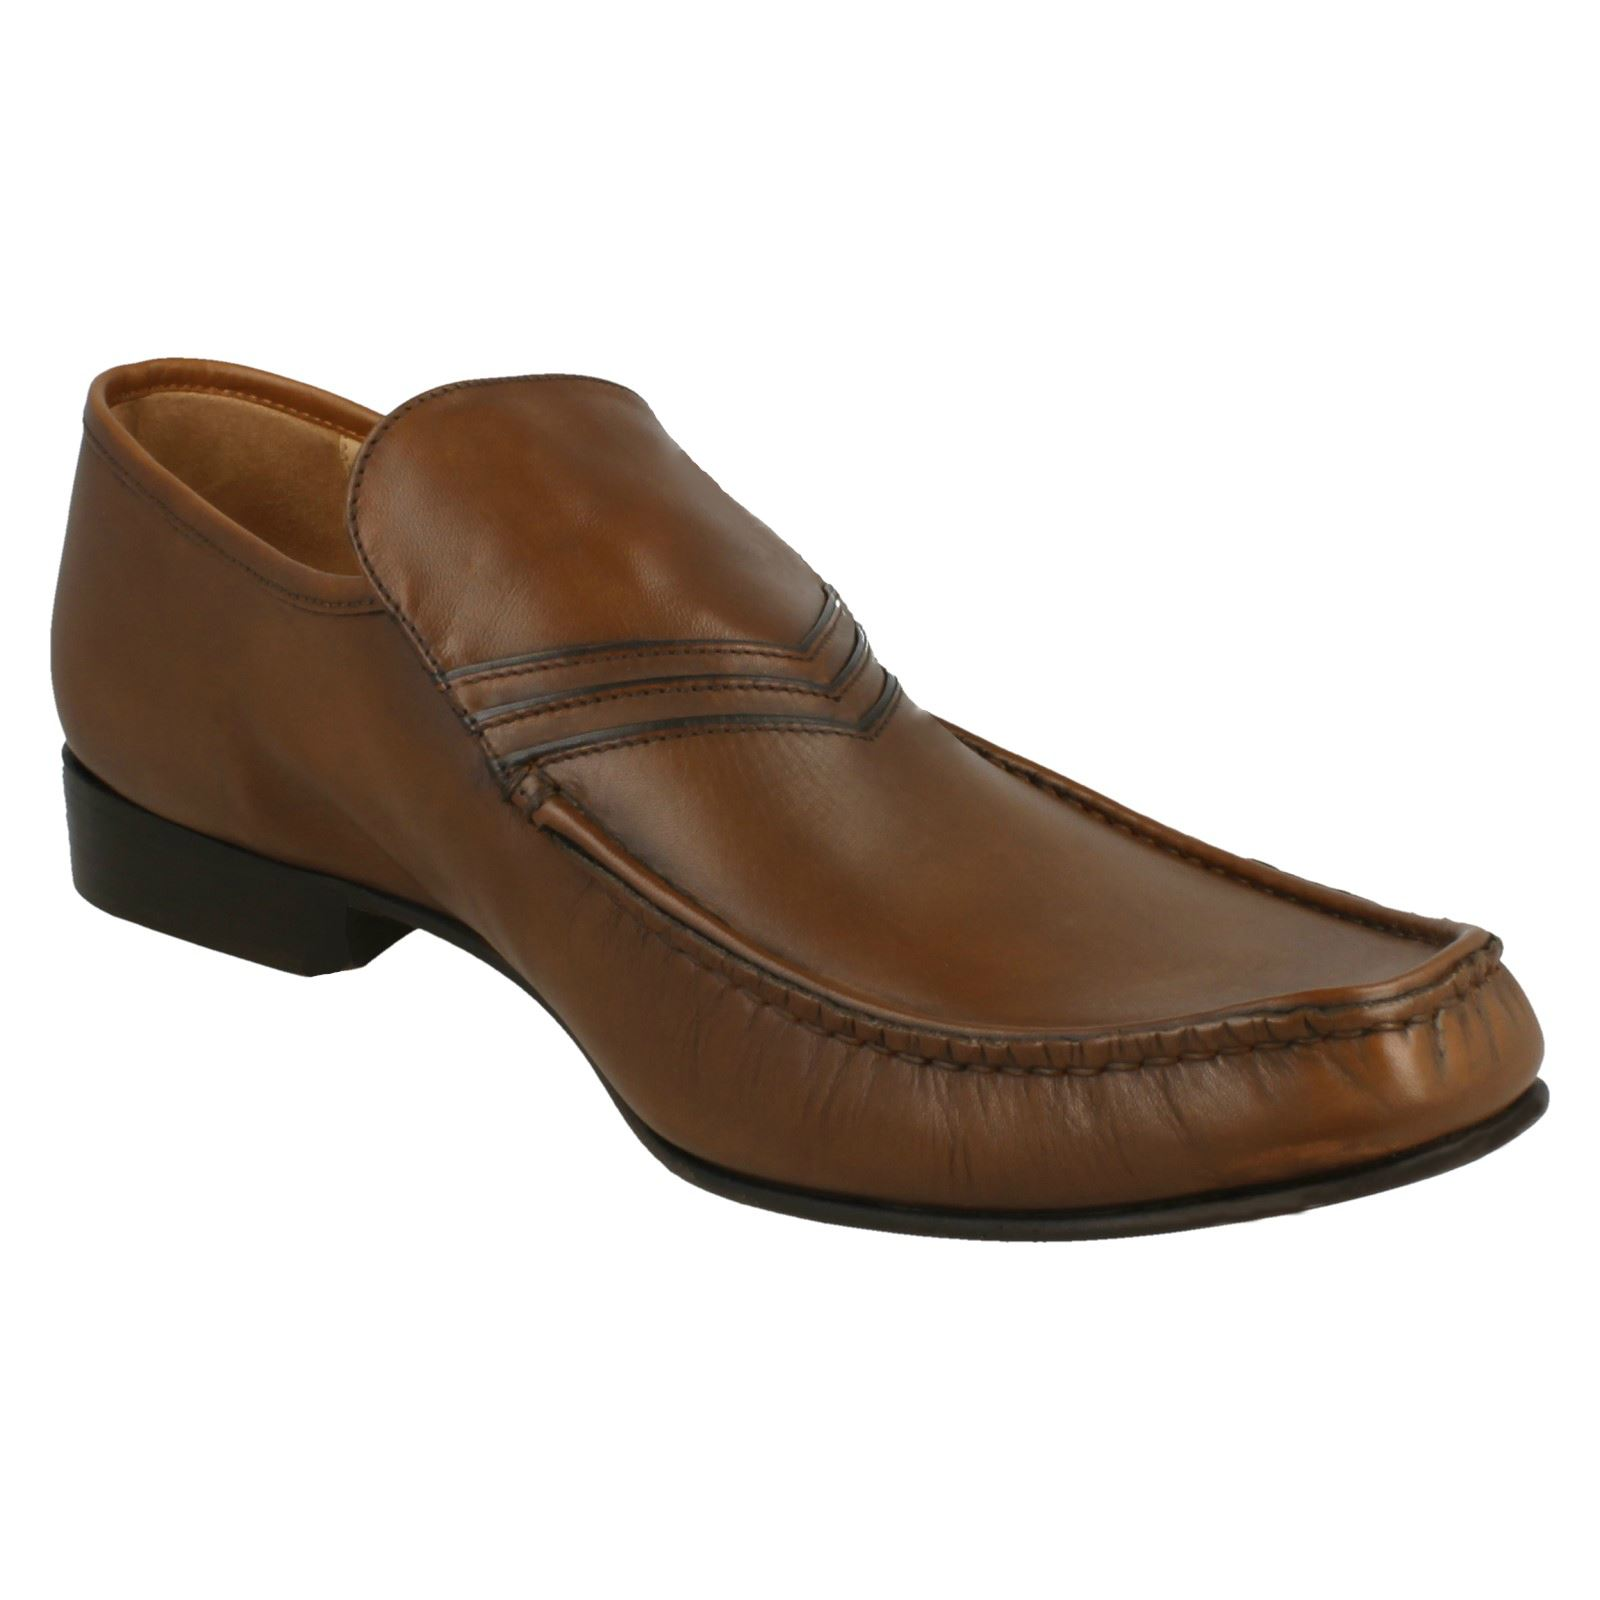 Hombre Feathermaster By By Feathermaster Grenson Zapatos Mocasín - Idaho 71fb1c